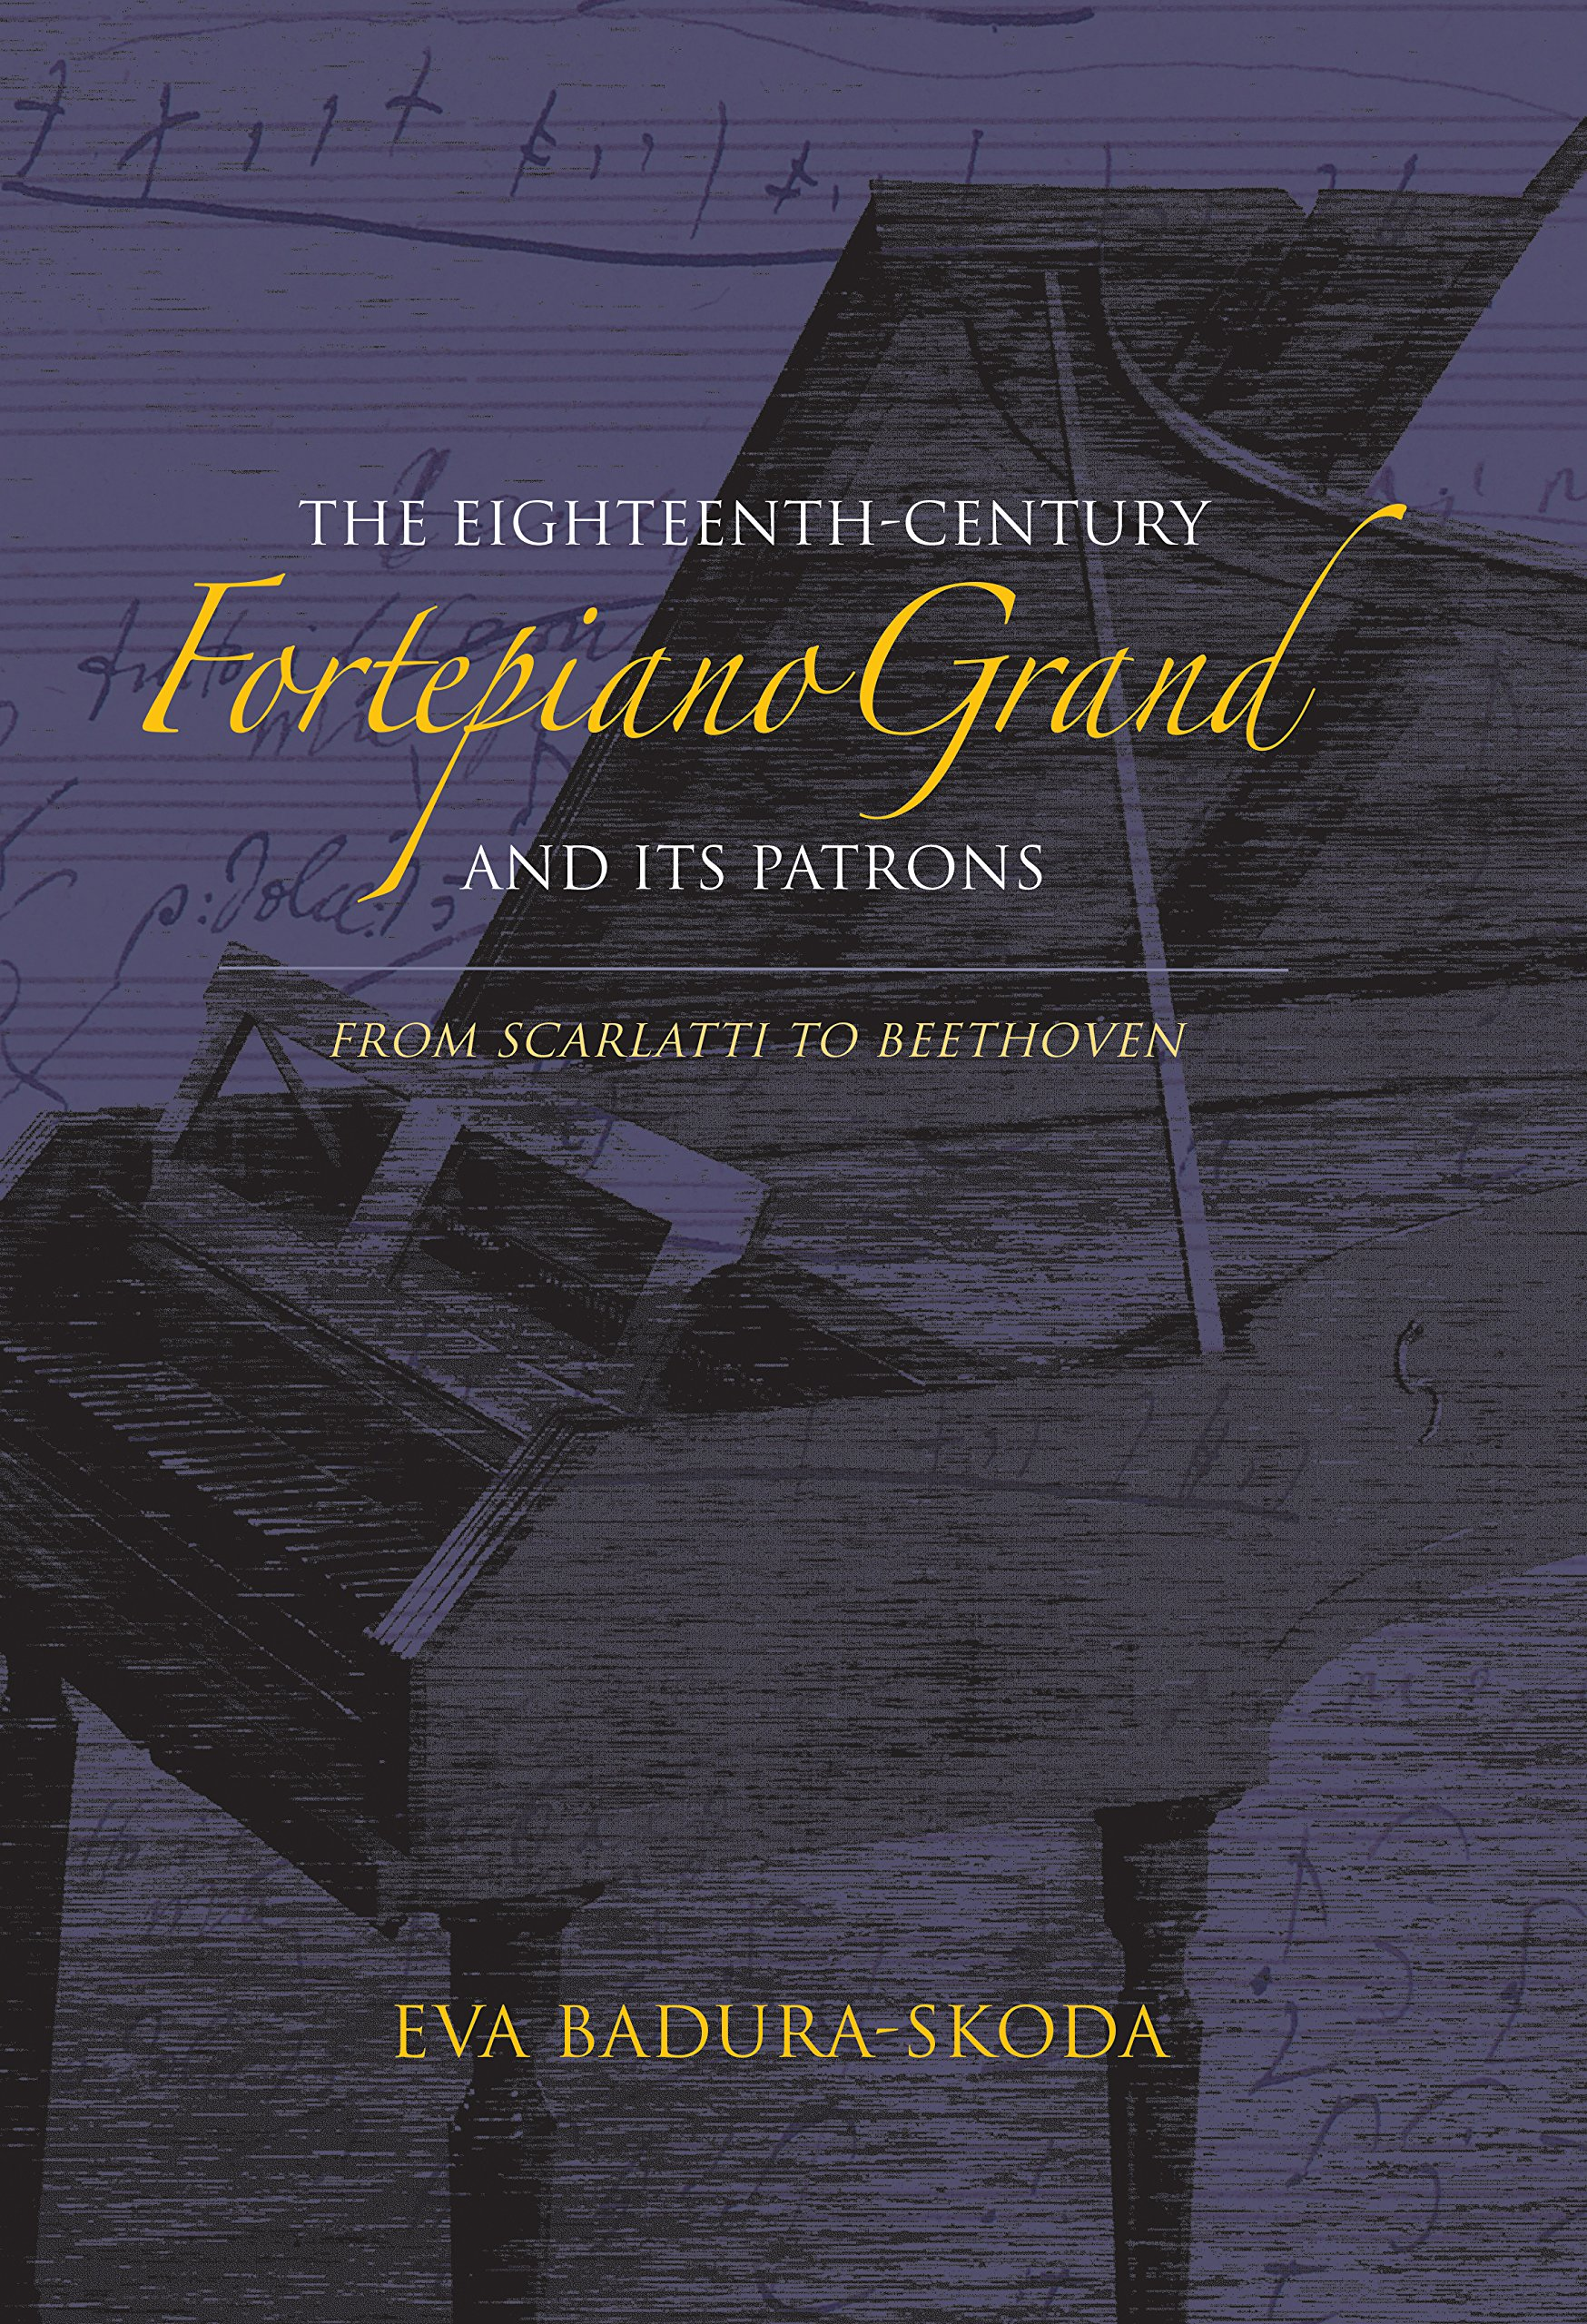 The Eighteenth-Century Fortepiano Grand and Its Patrons: From Scarlatti to Beethoven ebook